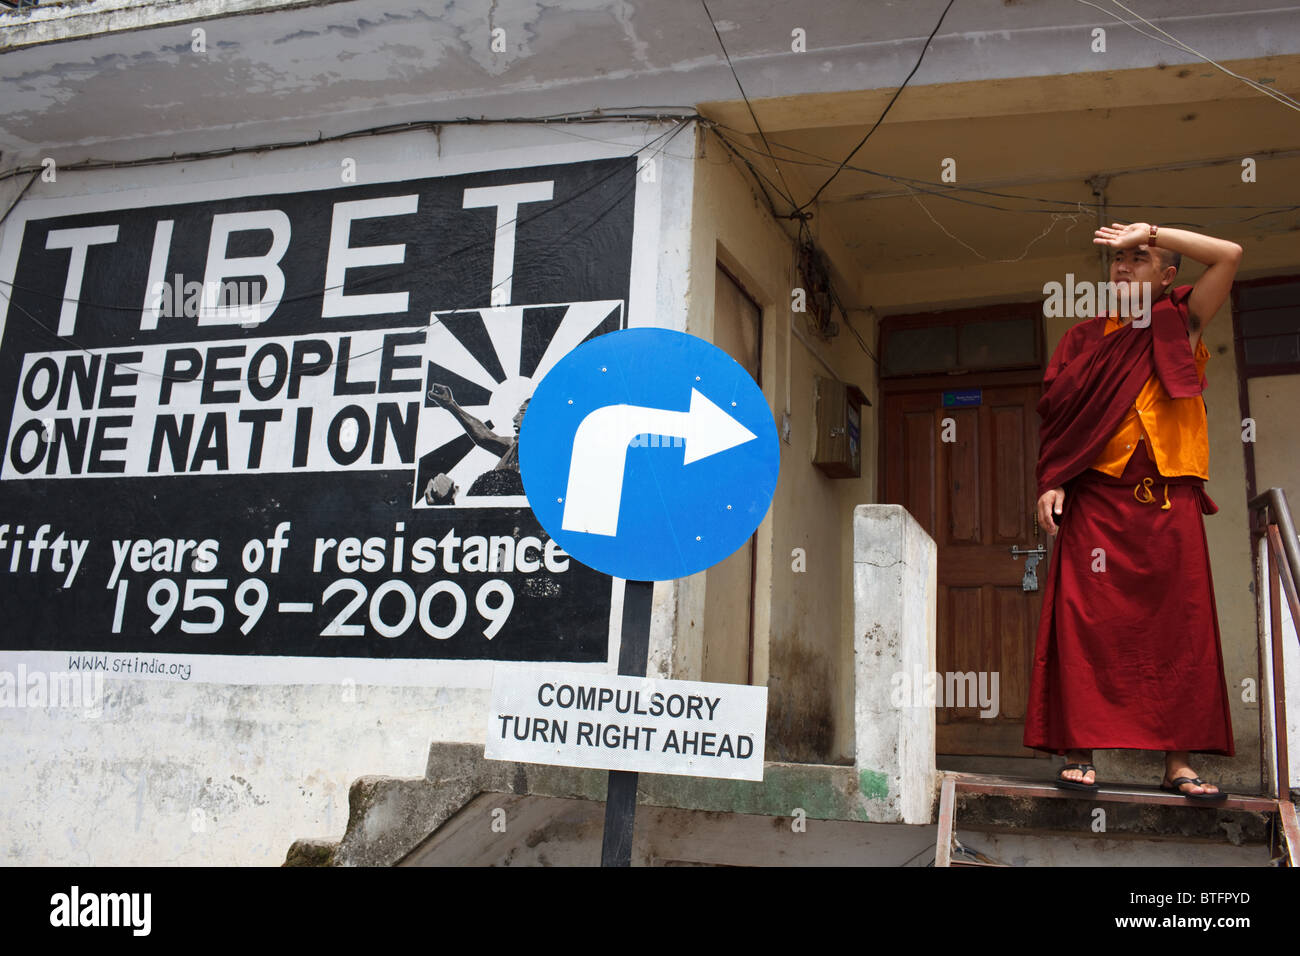 A Buddhist Tibetan monk standing by a 'Free Tibet' style mural McLeod Ganj, India - Stock Image